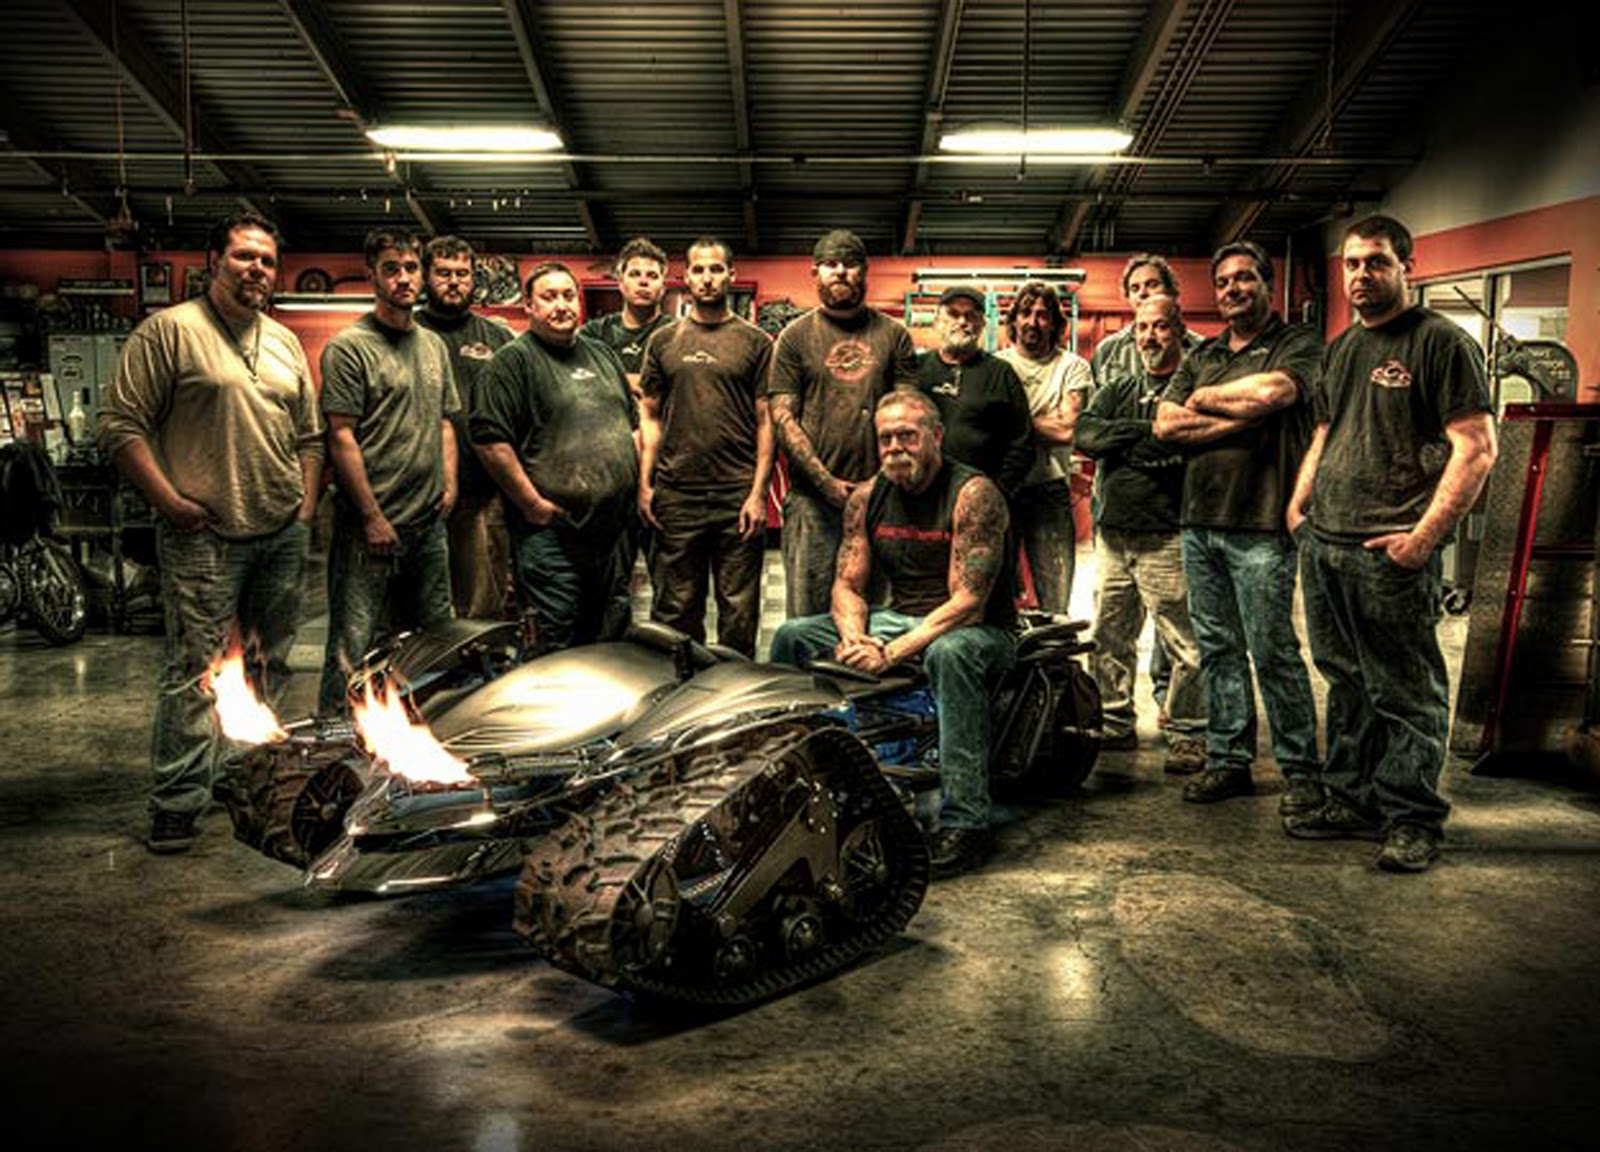 orange county choppers wallpaper for your desktop   wwwhigh 1600x1152